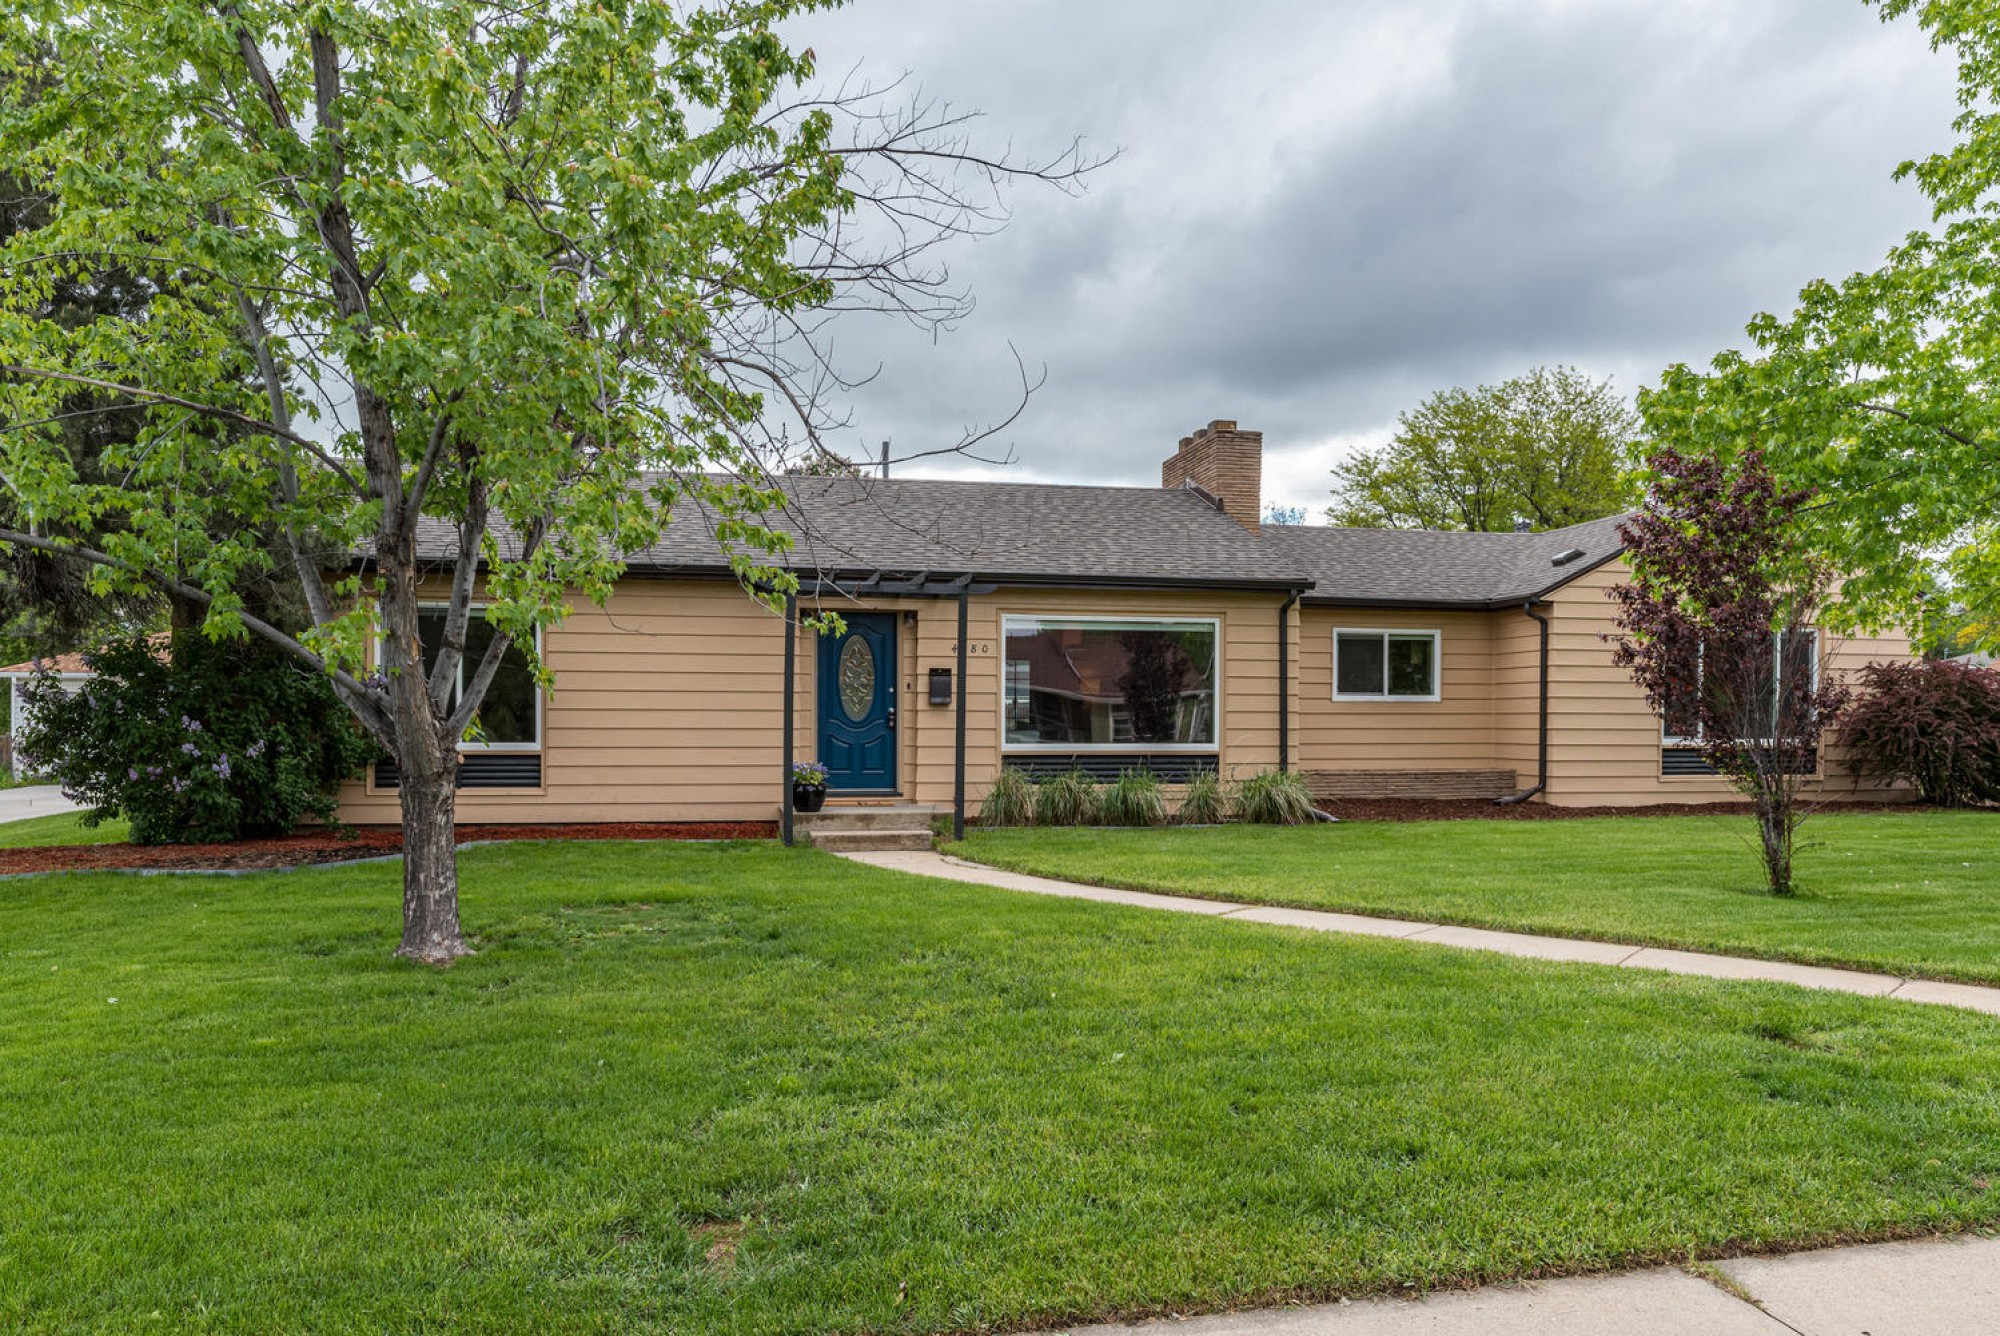 4980 S. Washington Street, Englewood, CO 80113